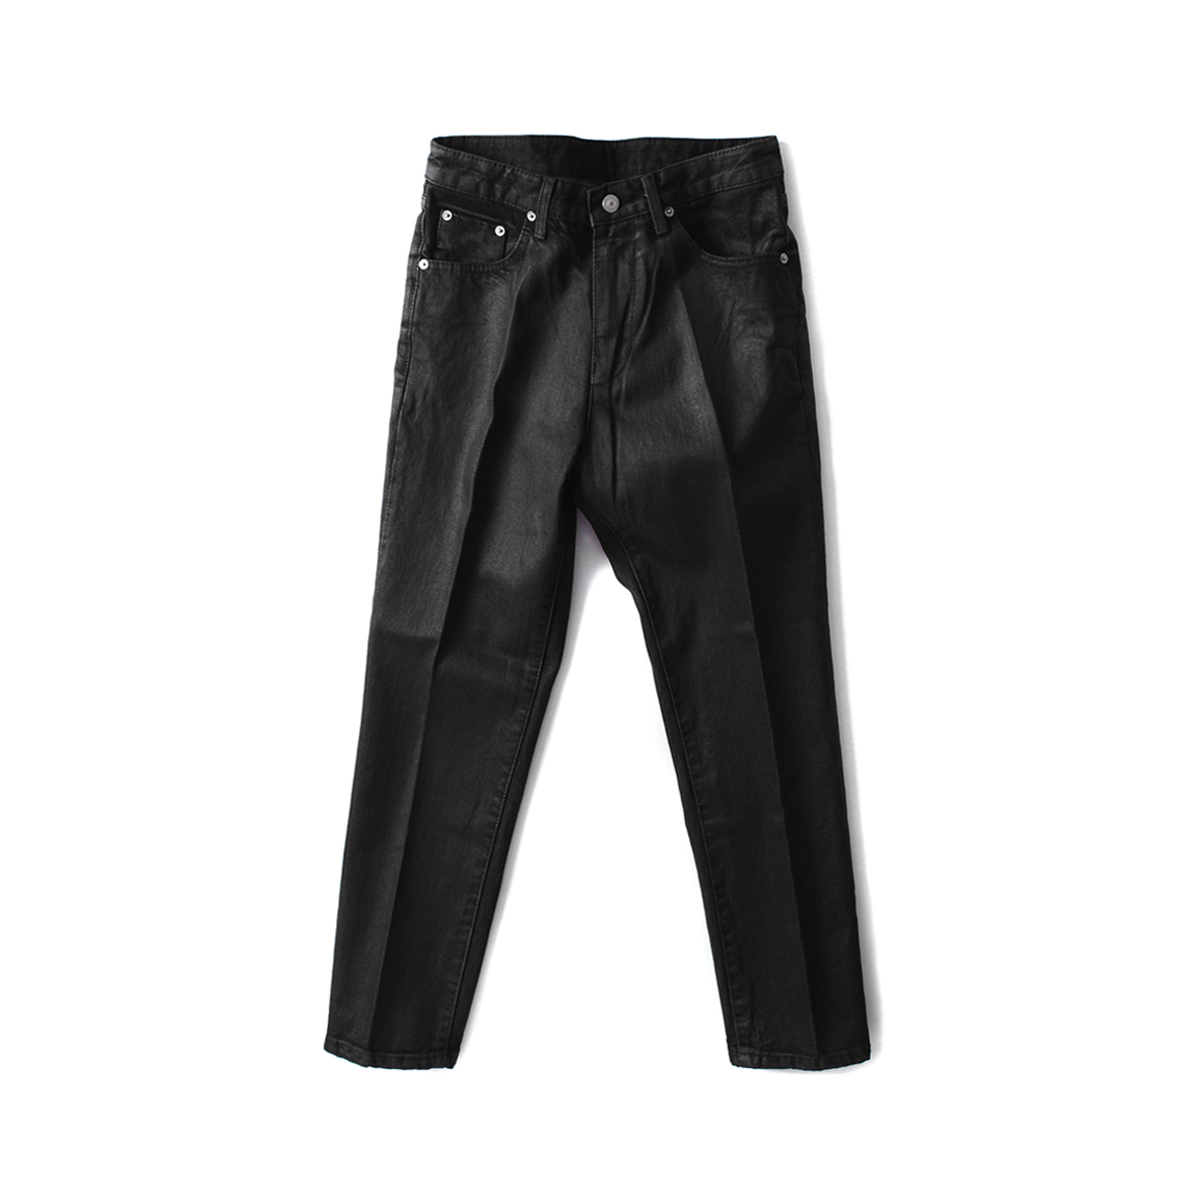 [BIRTHDAYSUIT] SLIM FIT COATED JEANS 'BLACK'